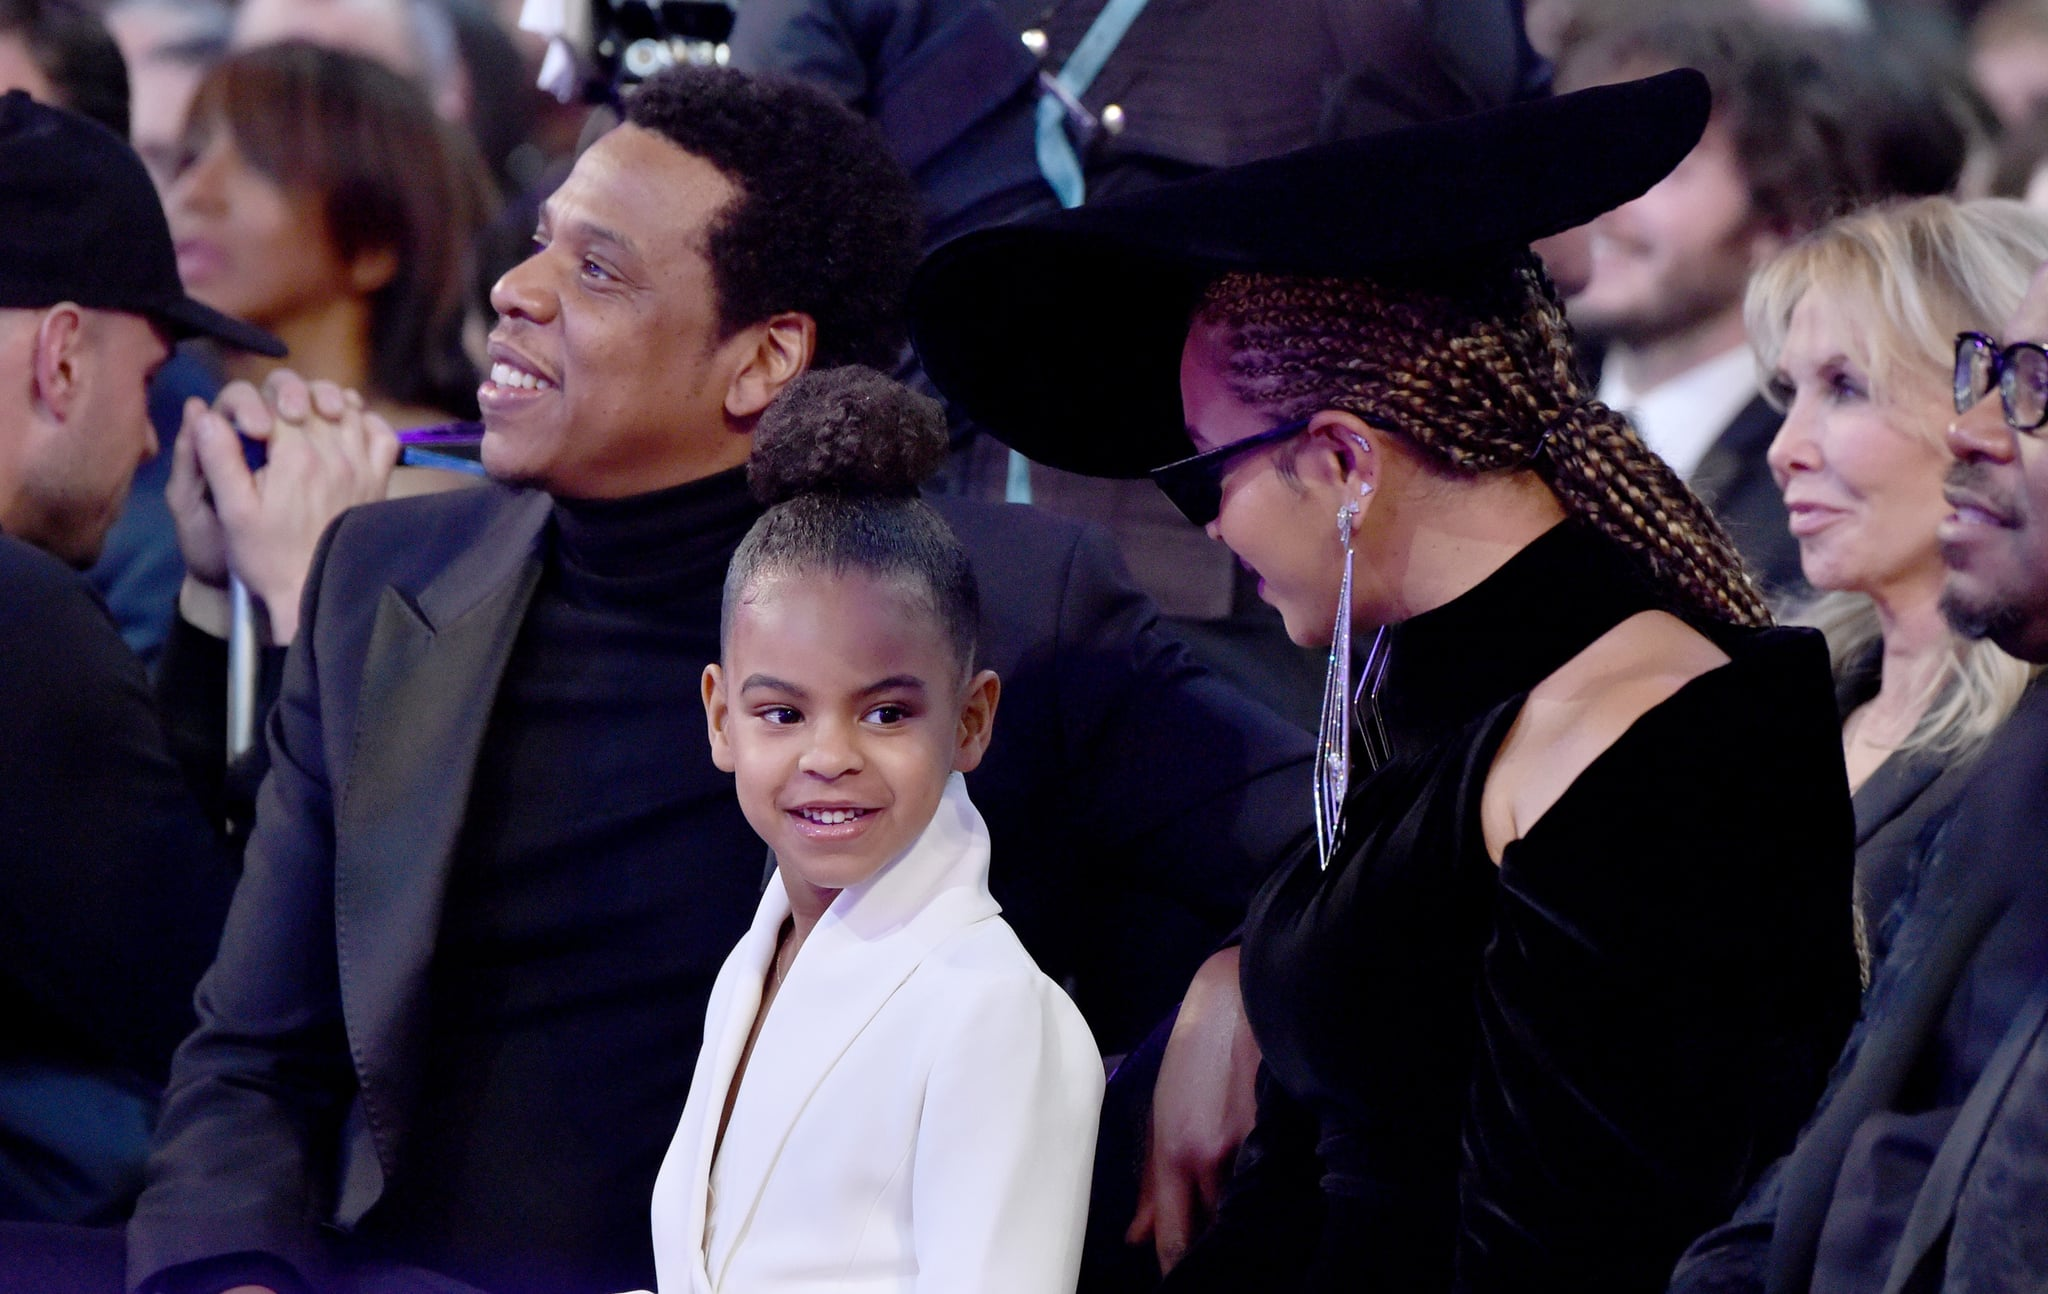 Blue Ivy Carter Becomes Youngest Grammy Awards Nominee In History